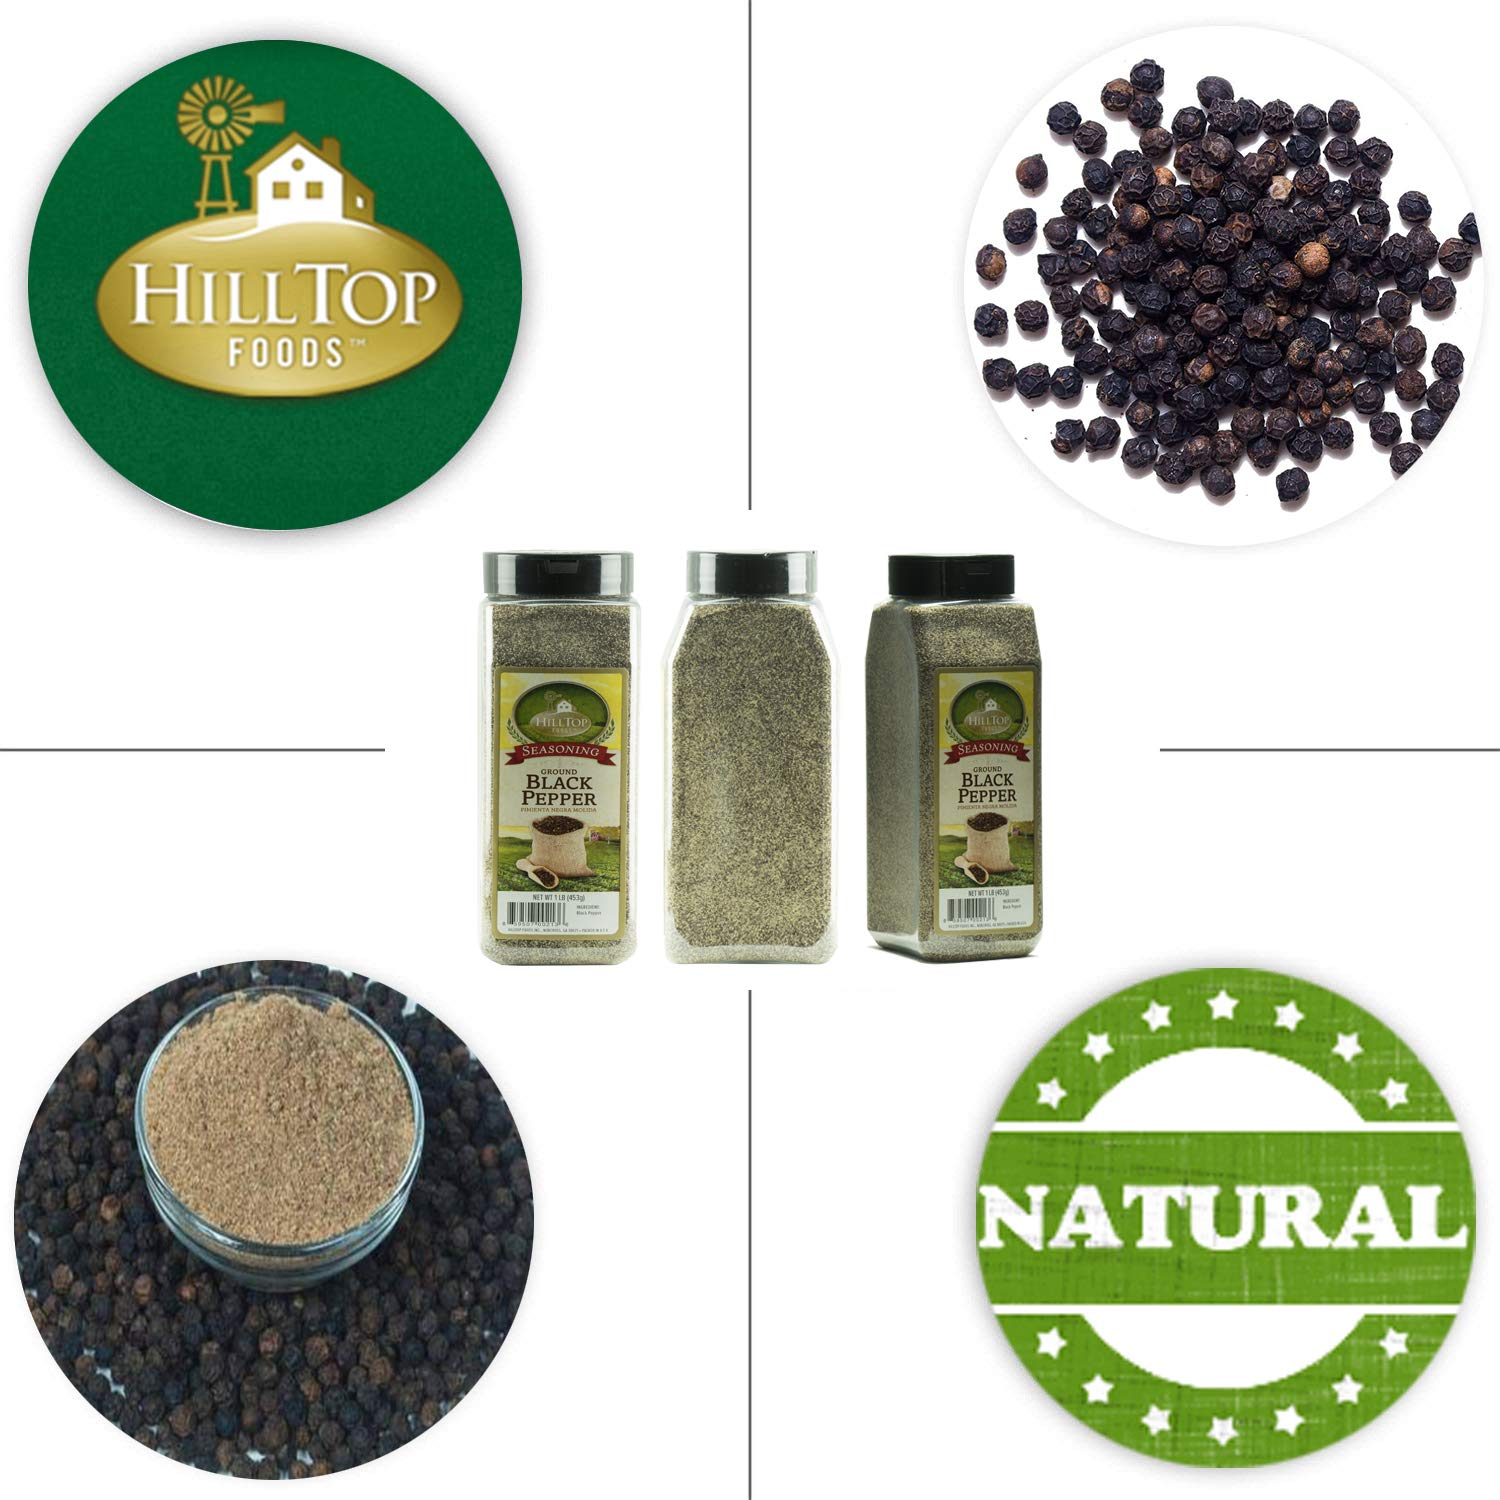 Hilltop Foods Ground Black Pepper-Natural Powder 1 Lb. Container by HillTop Foods Inc. (Image #5)